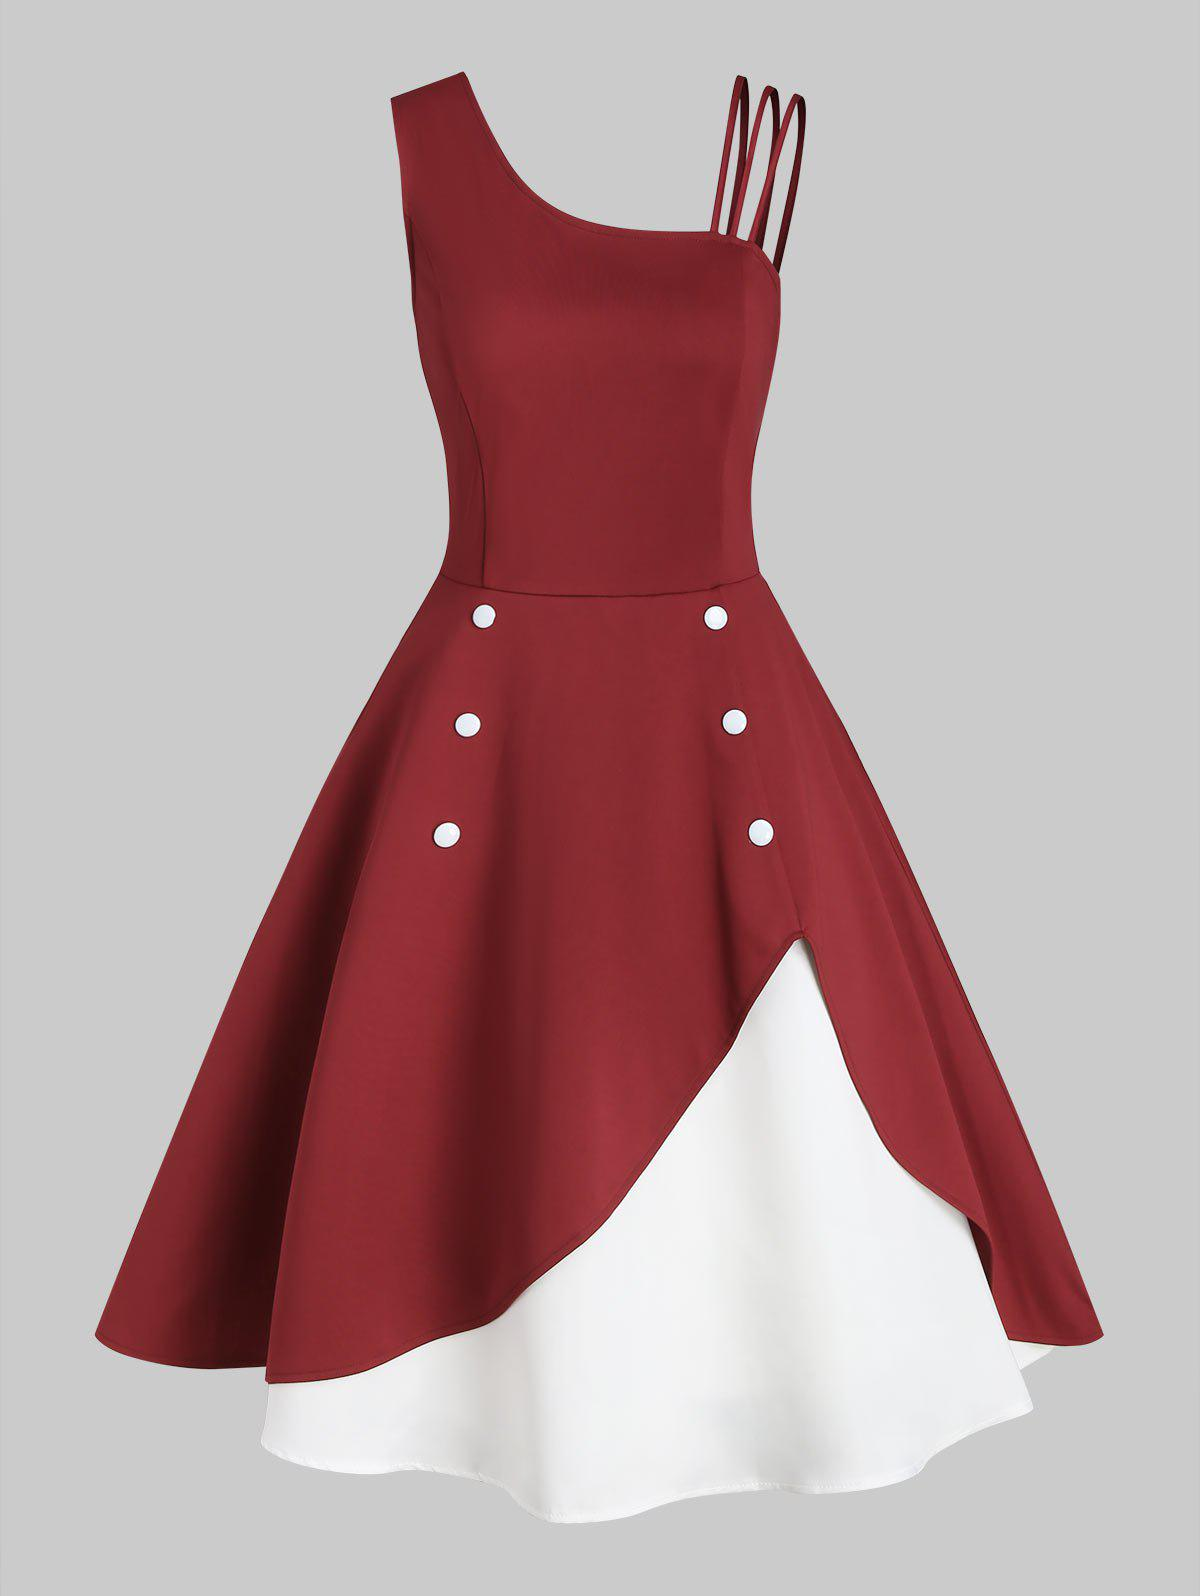 Skew Neck Button Embellished Colorblock Rockabilly Style Dress - RED WINE XL